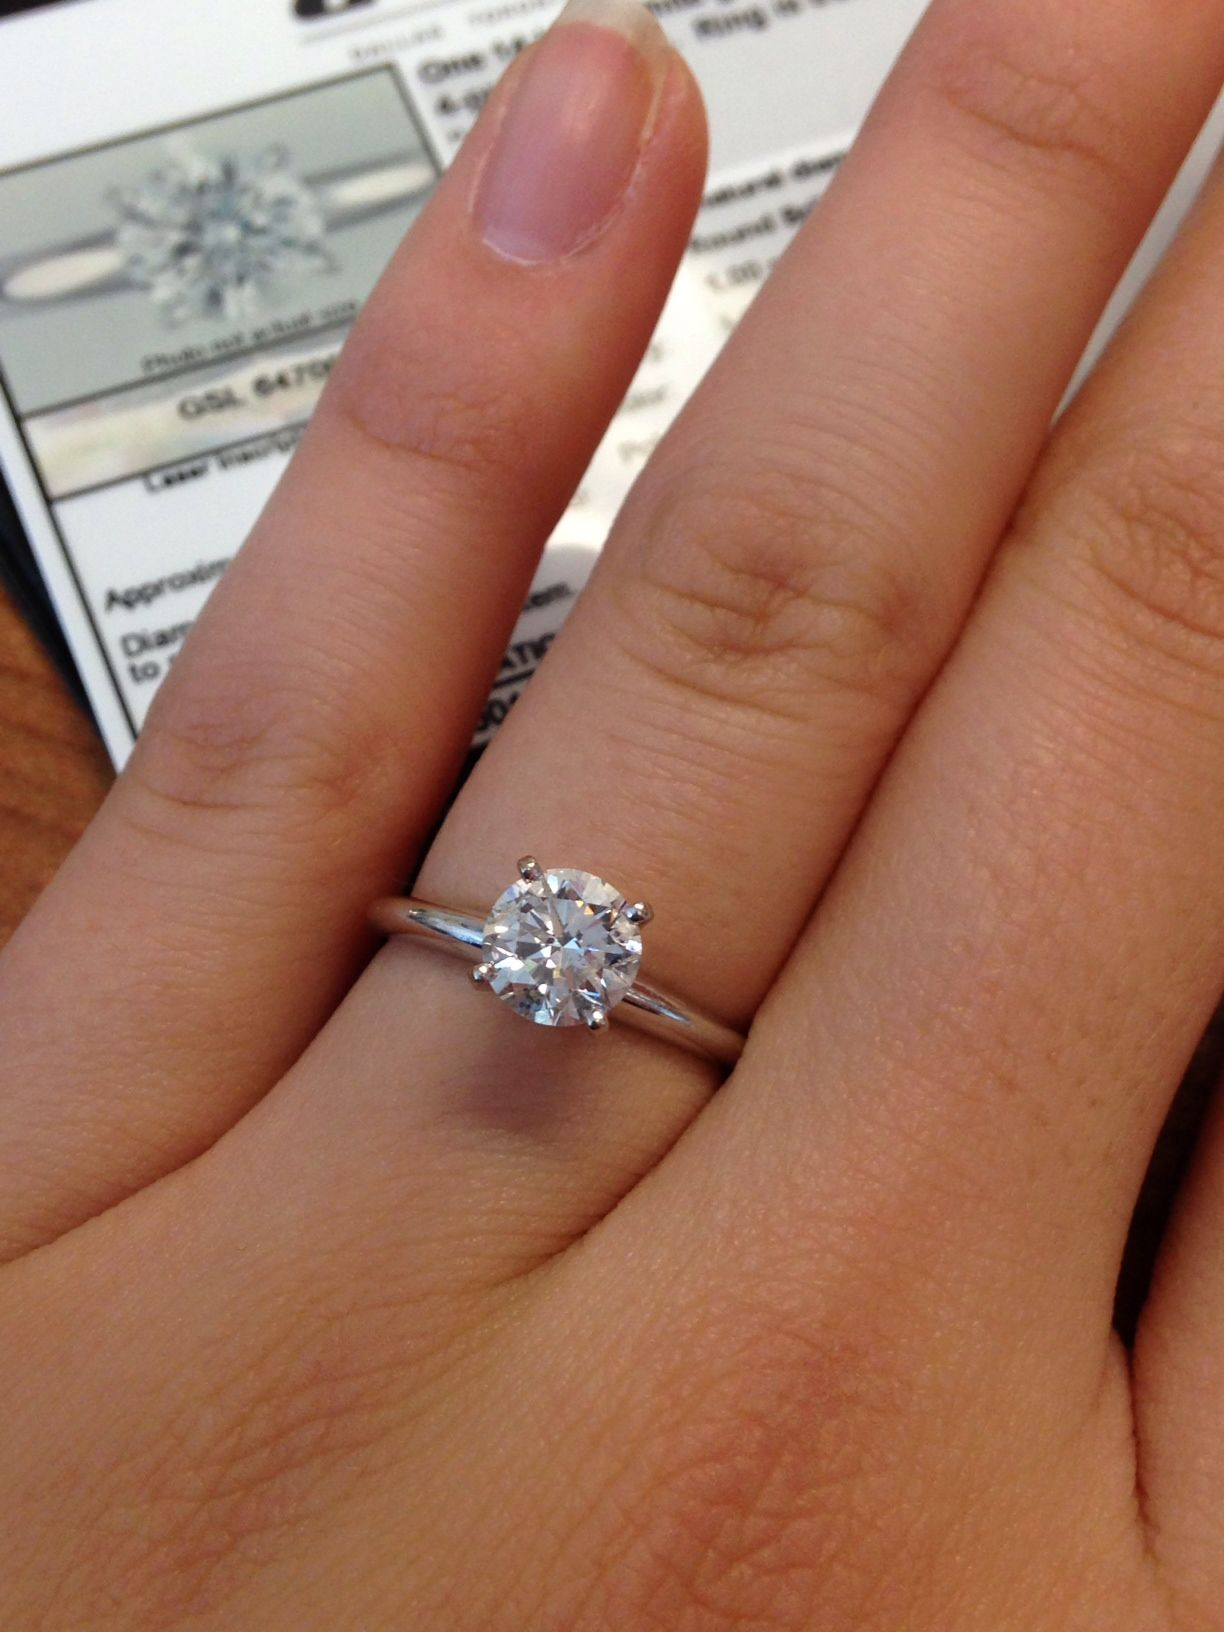 1 Carat Round Diamond TiffanyStyle Engagement Ring from